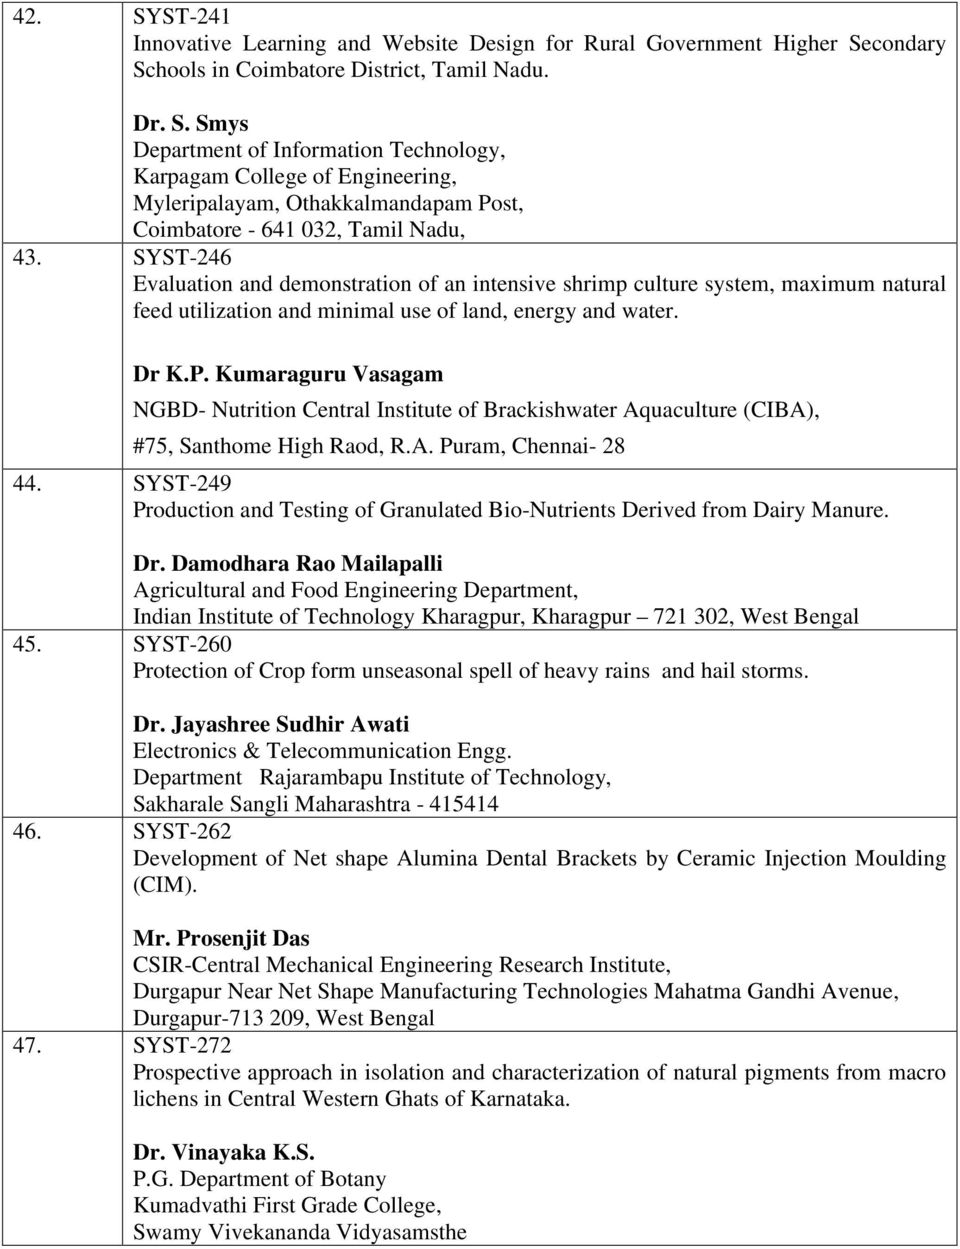 List of concept notes recommended under SYST scheme - PDF